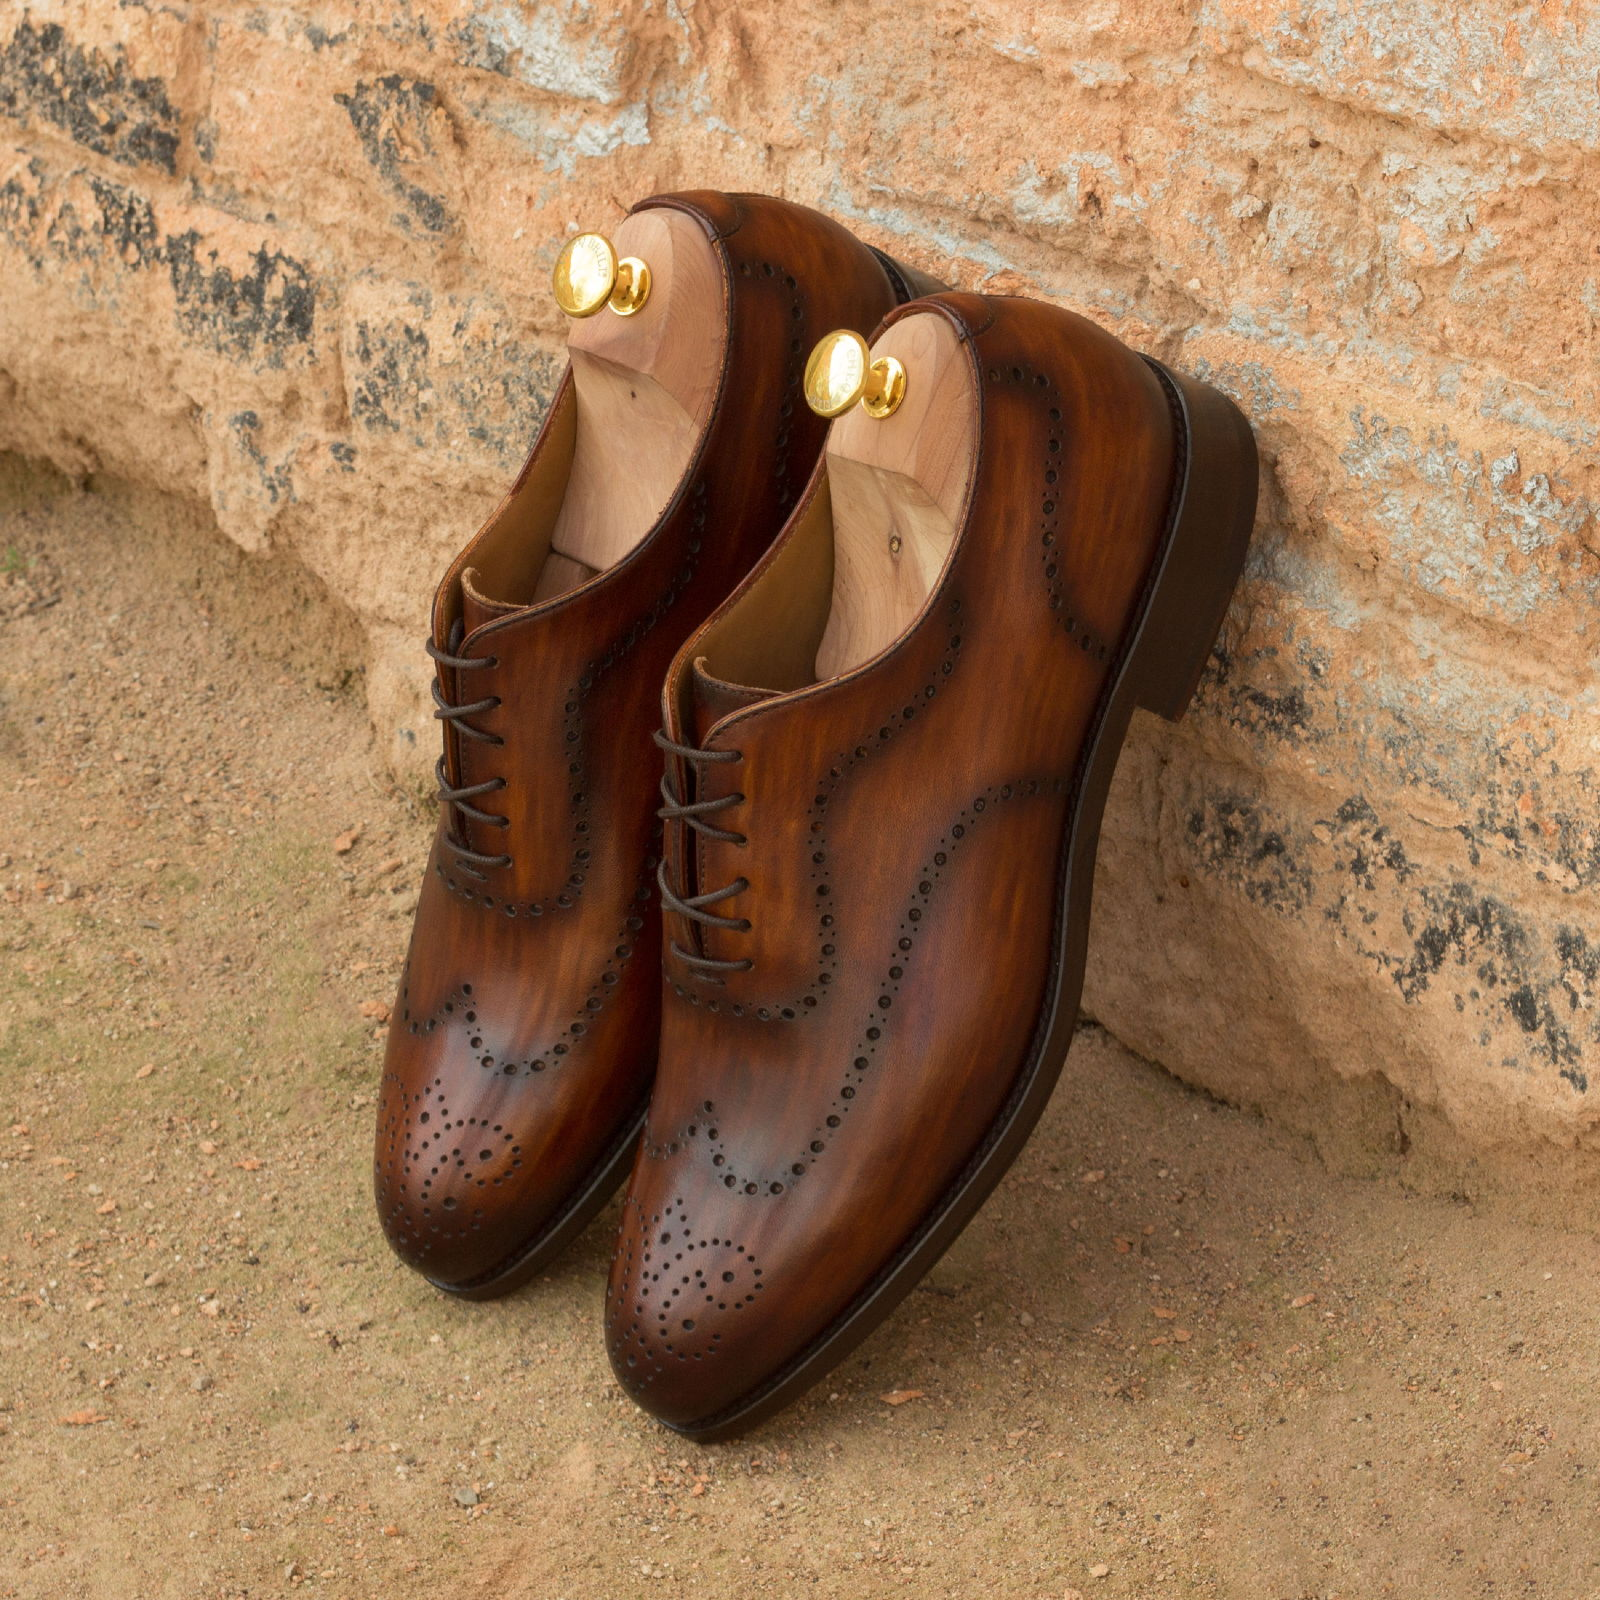 Whole cut cognac crust patina : 330€